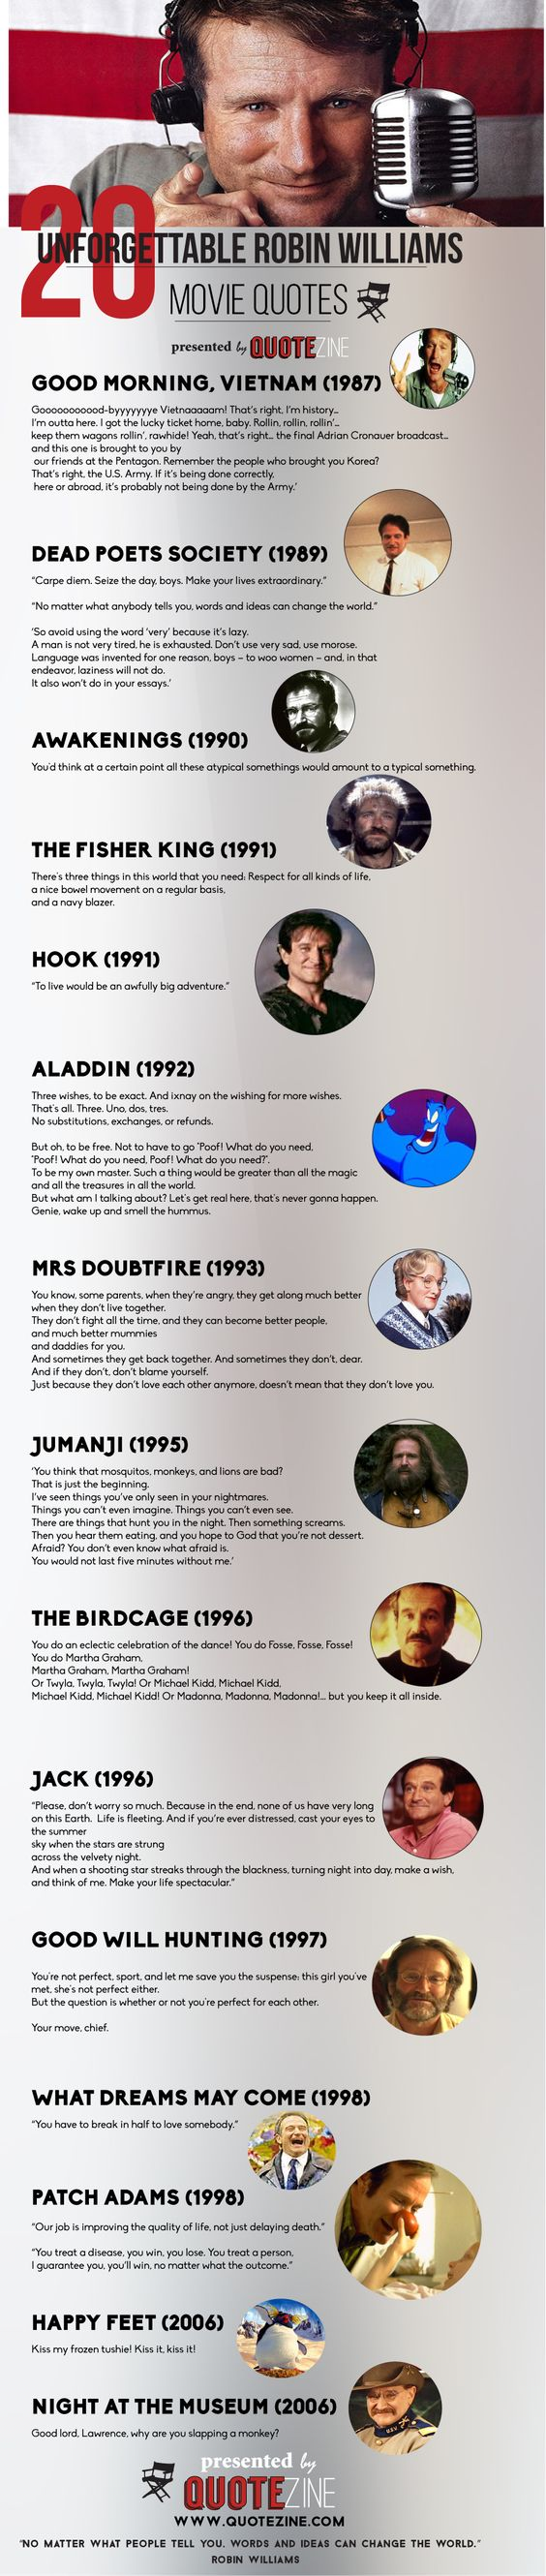 20 Unforgettable Robin Williams Movie Quotes #infographic #quotes #motivational